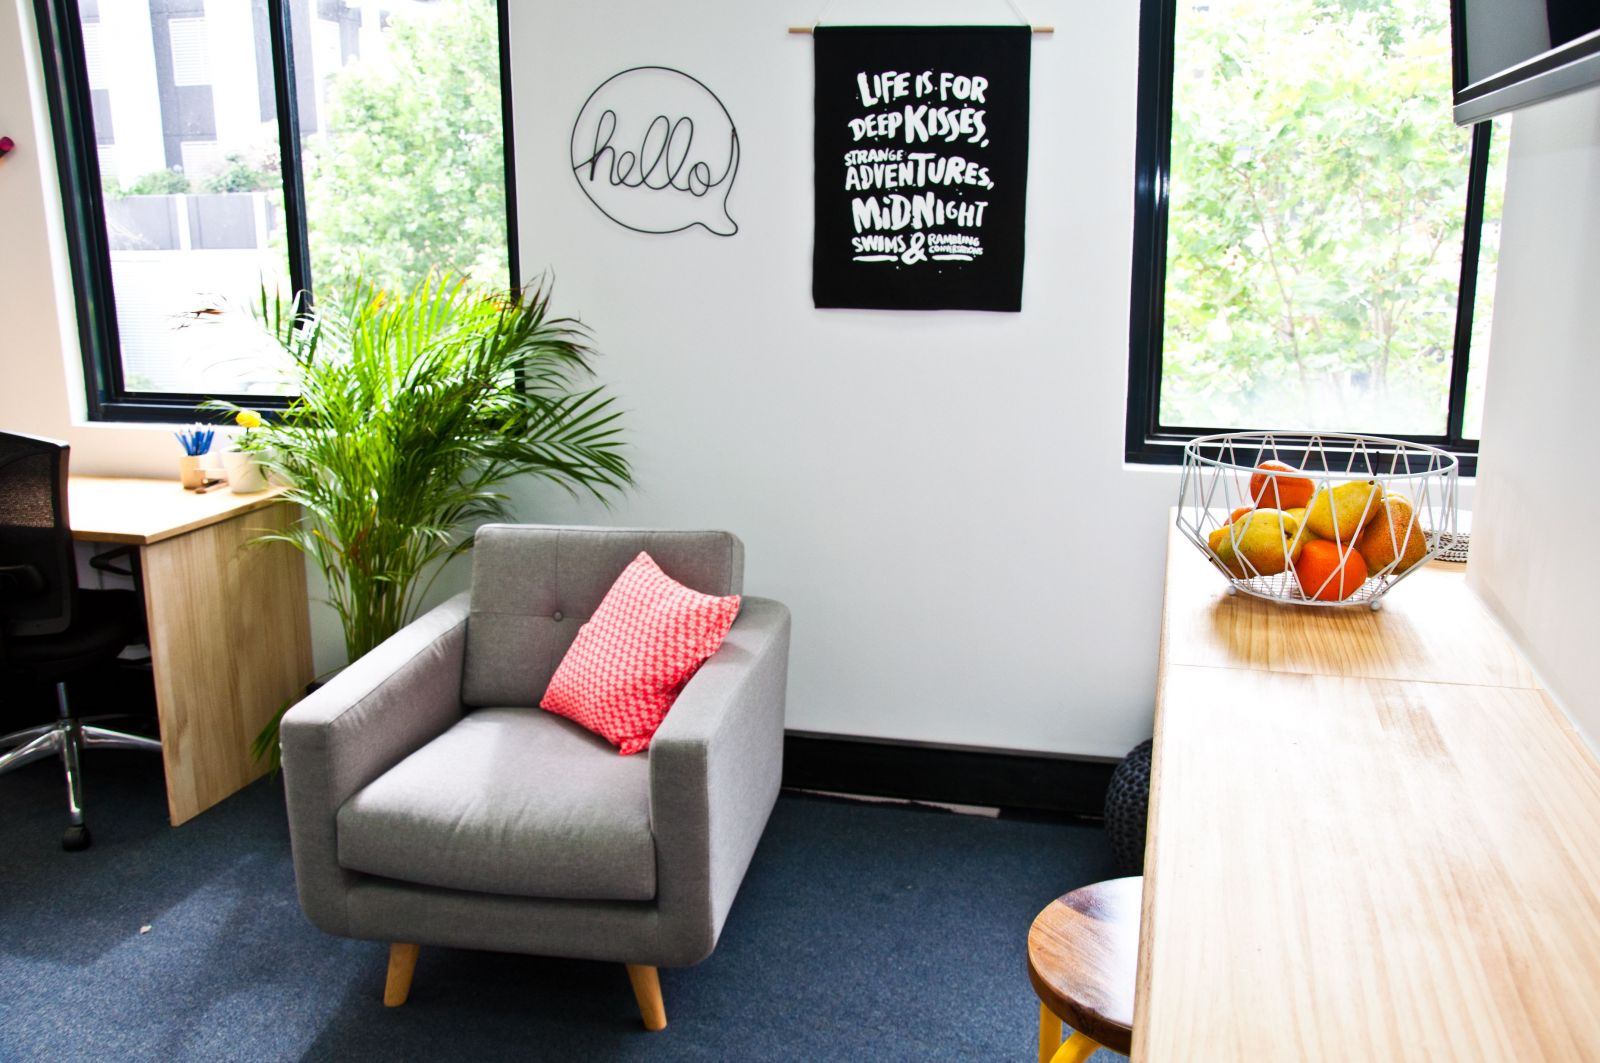 The Little Space, Sydney